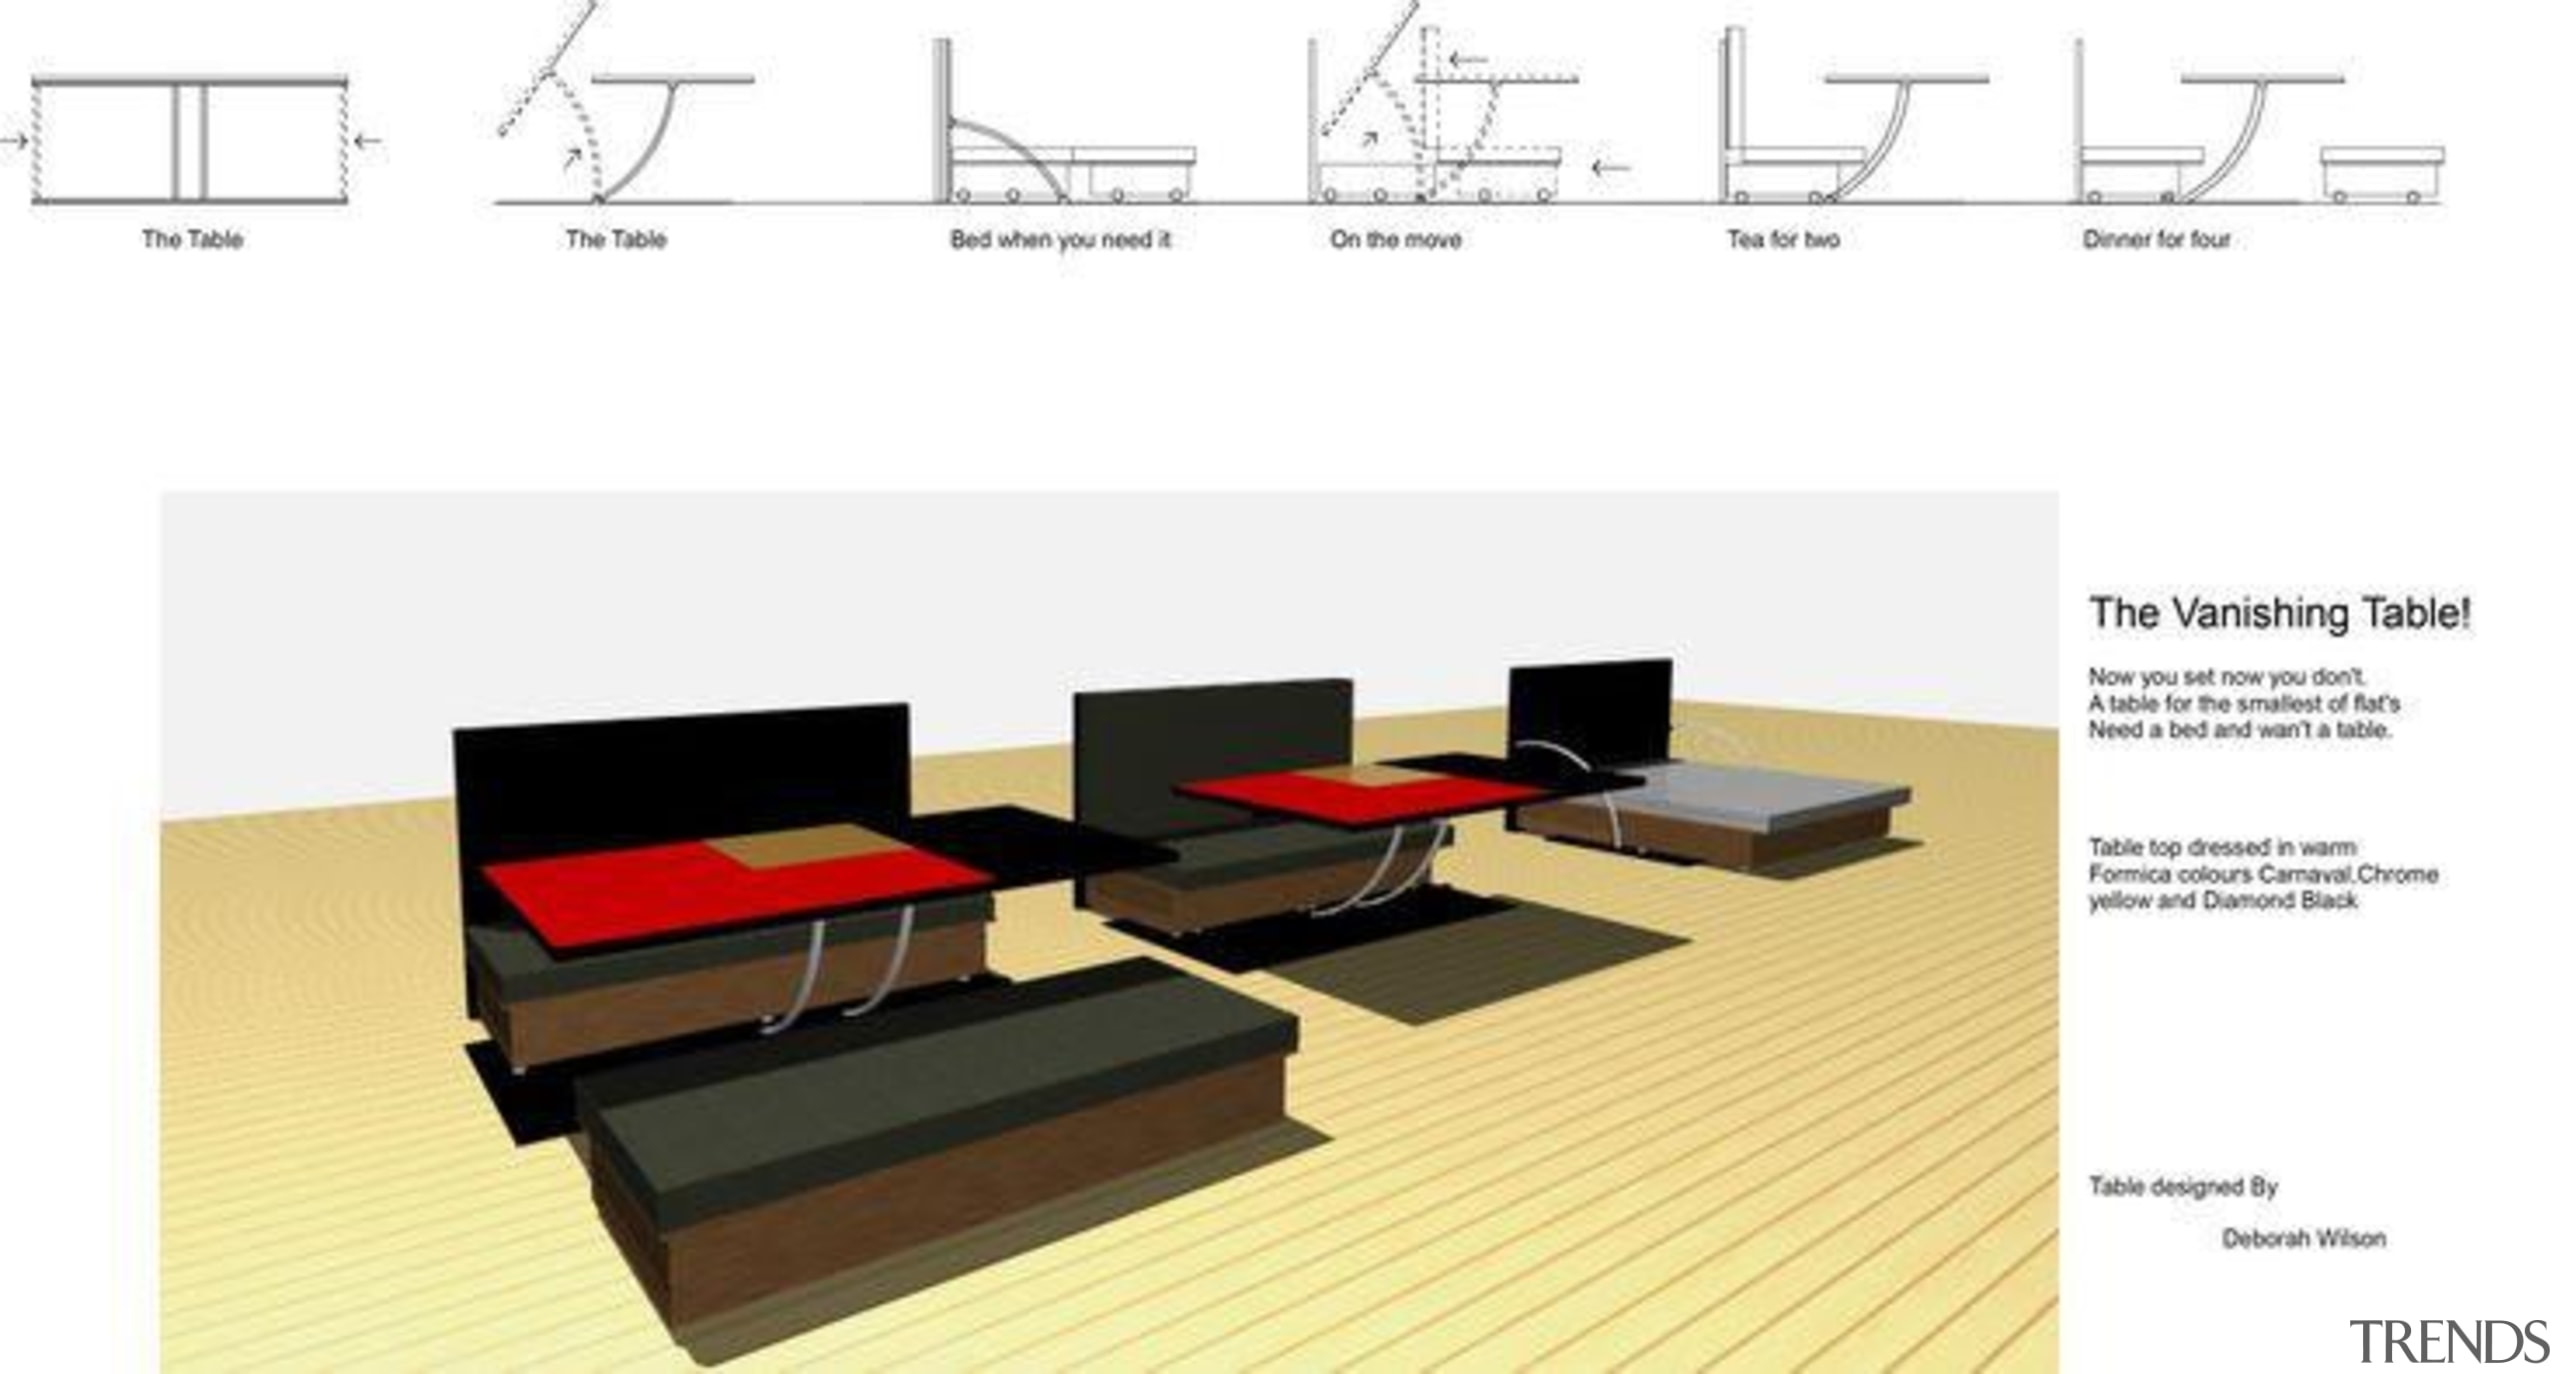 by Debra Wilson - Vanishing Table - angle angle, design, floor, furniture, product, product design, table, white